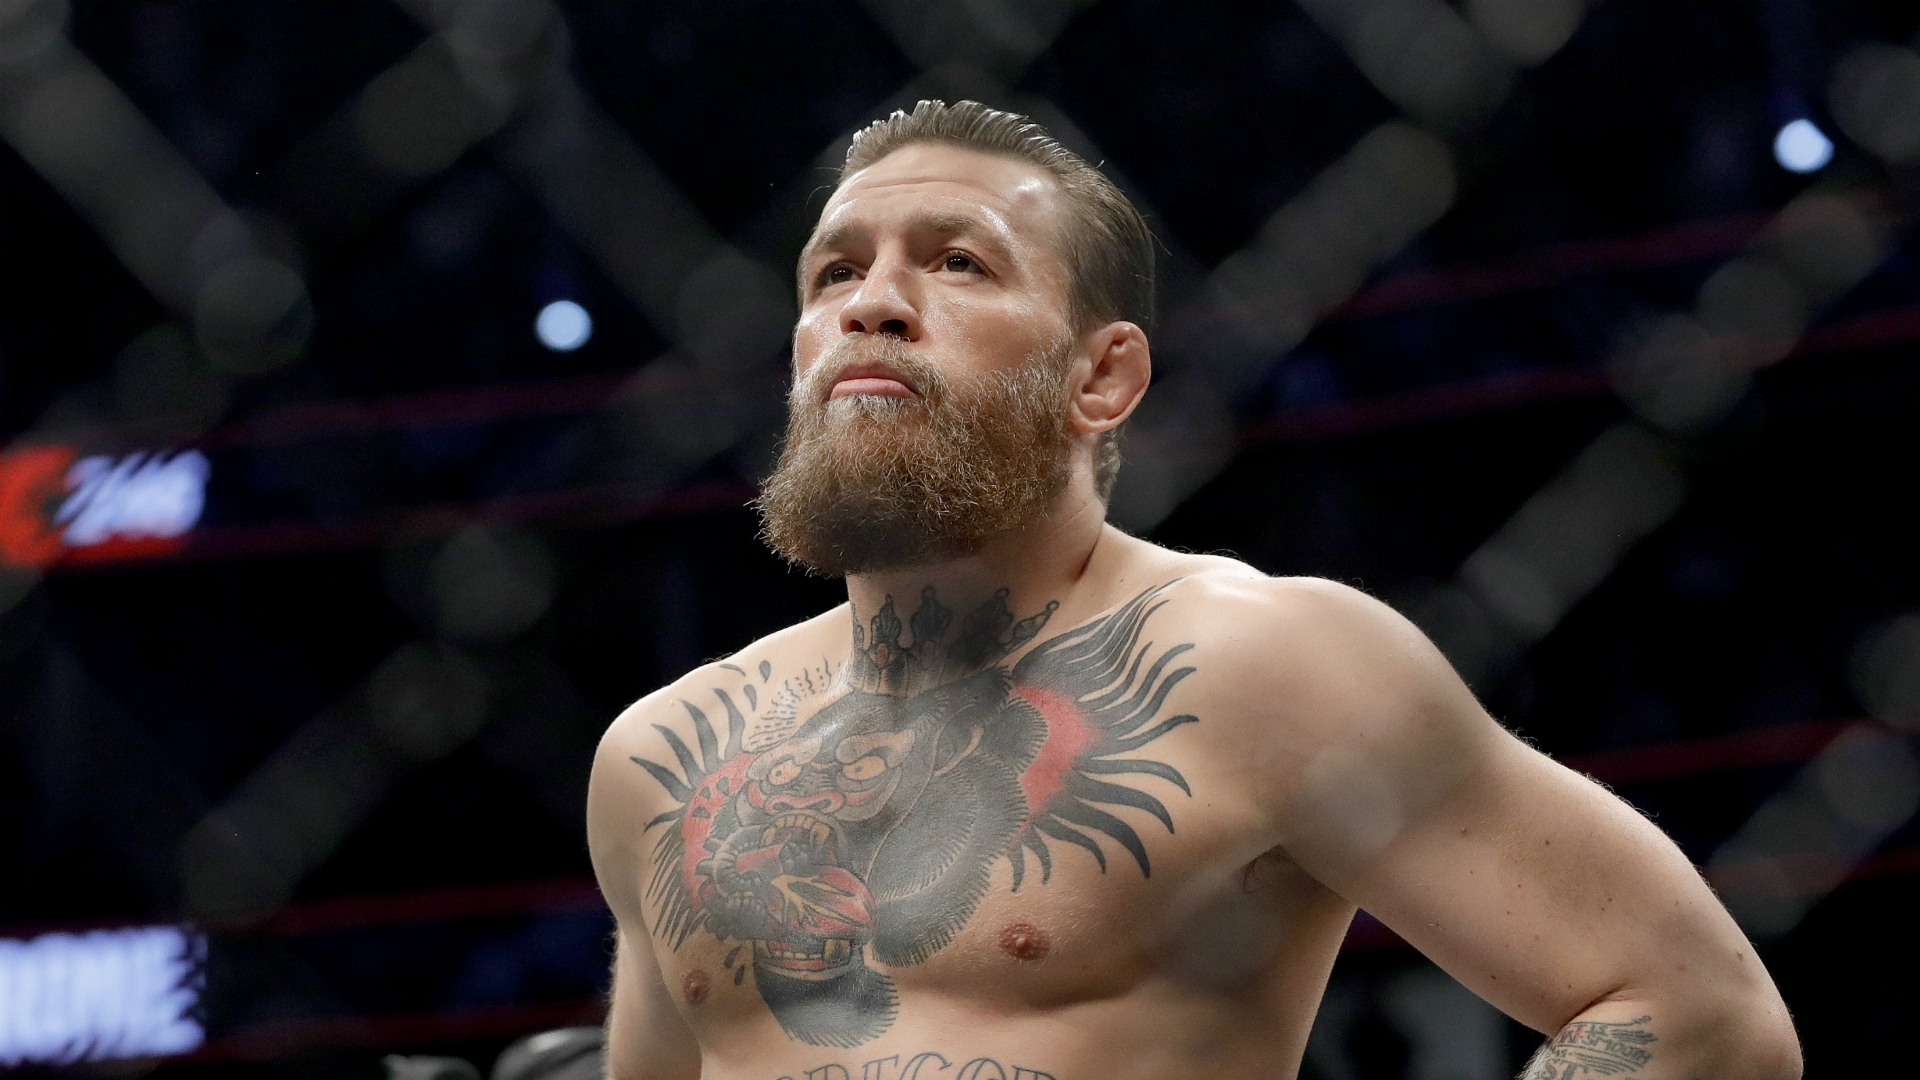 McGregor slams UFC for being 'held back' as MMA star looks ahead to Pacquiao bout